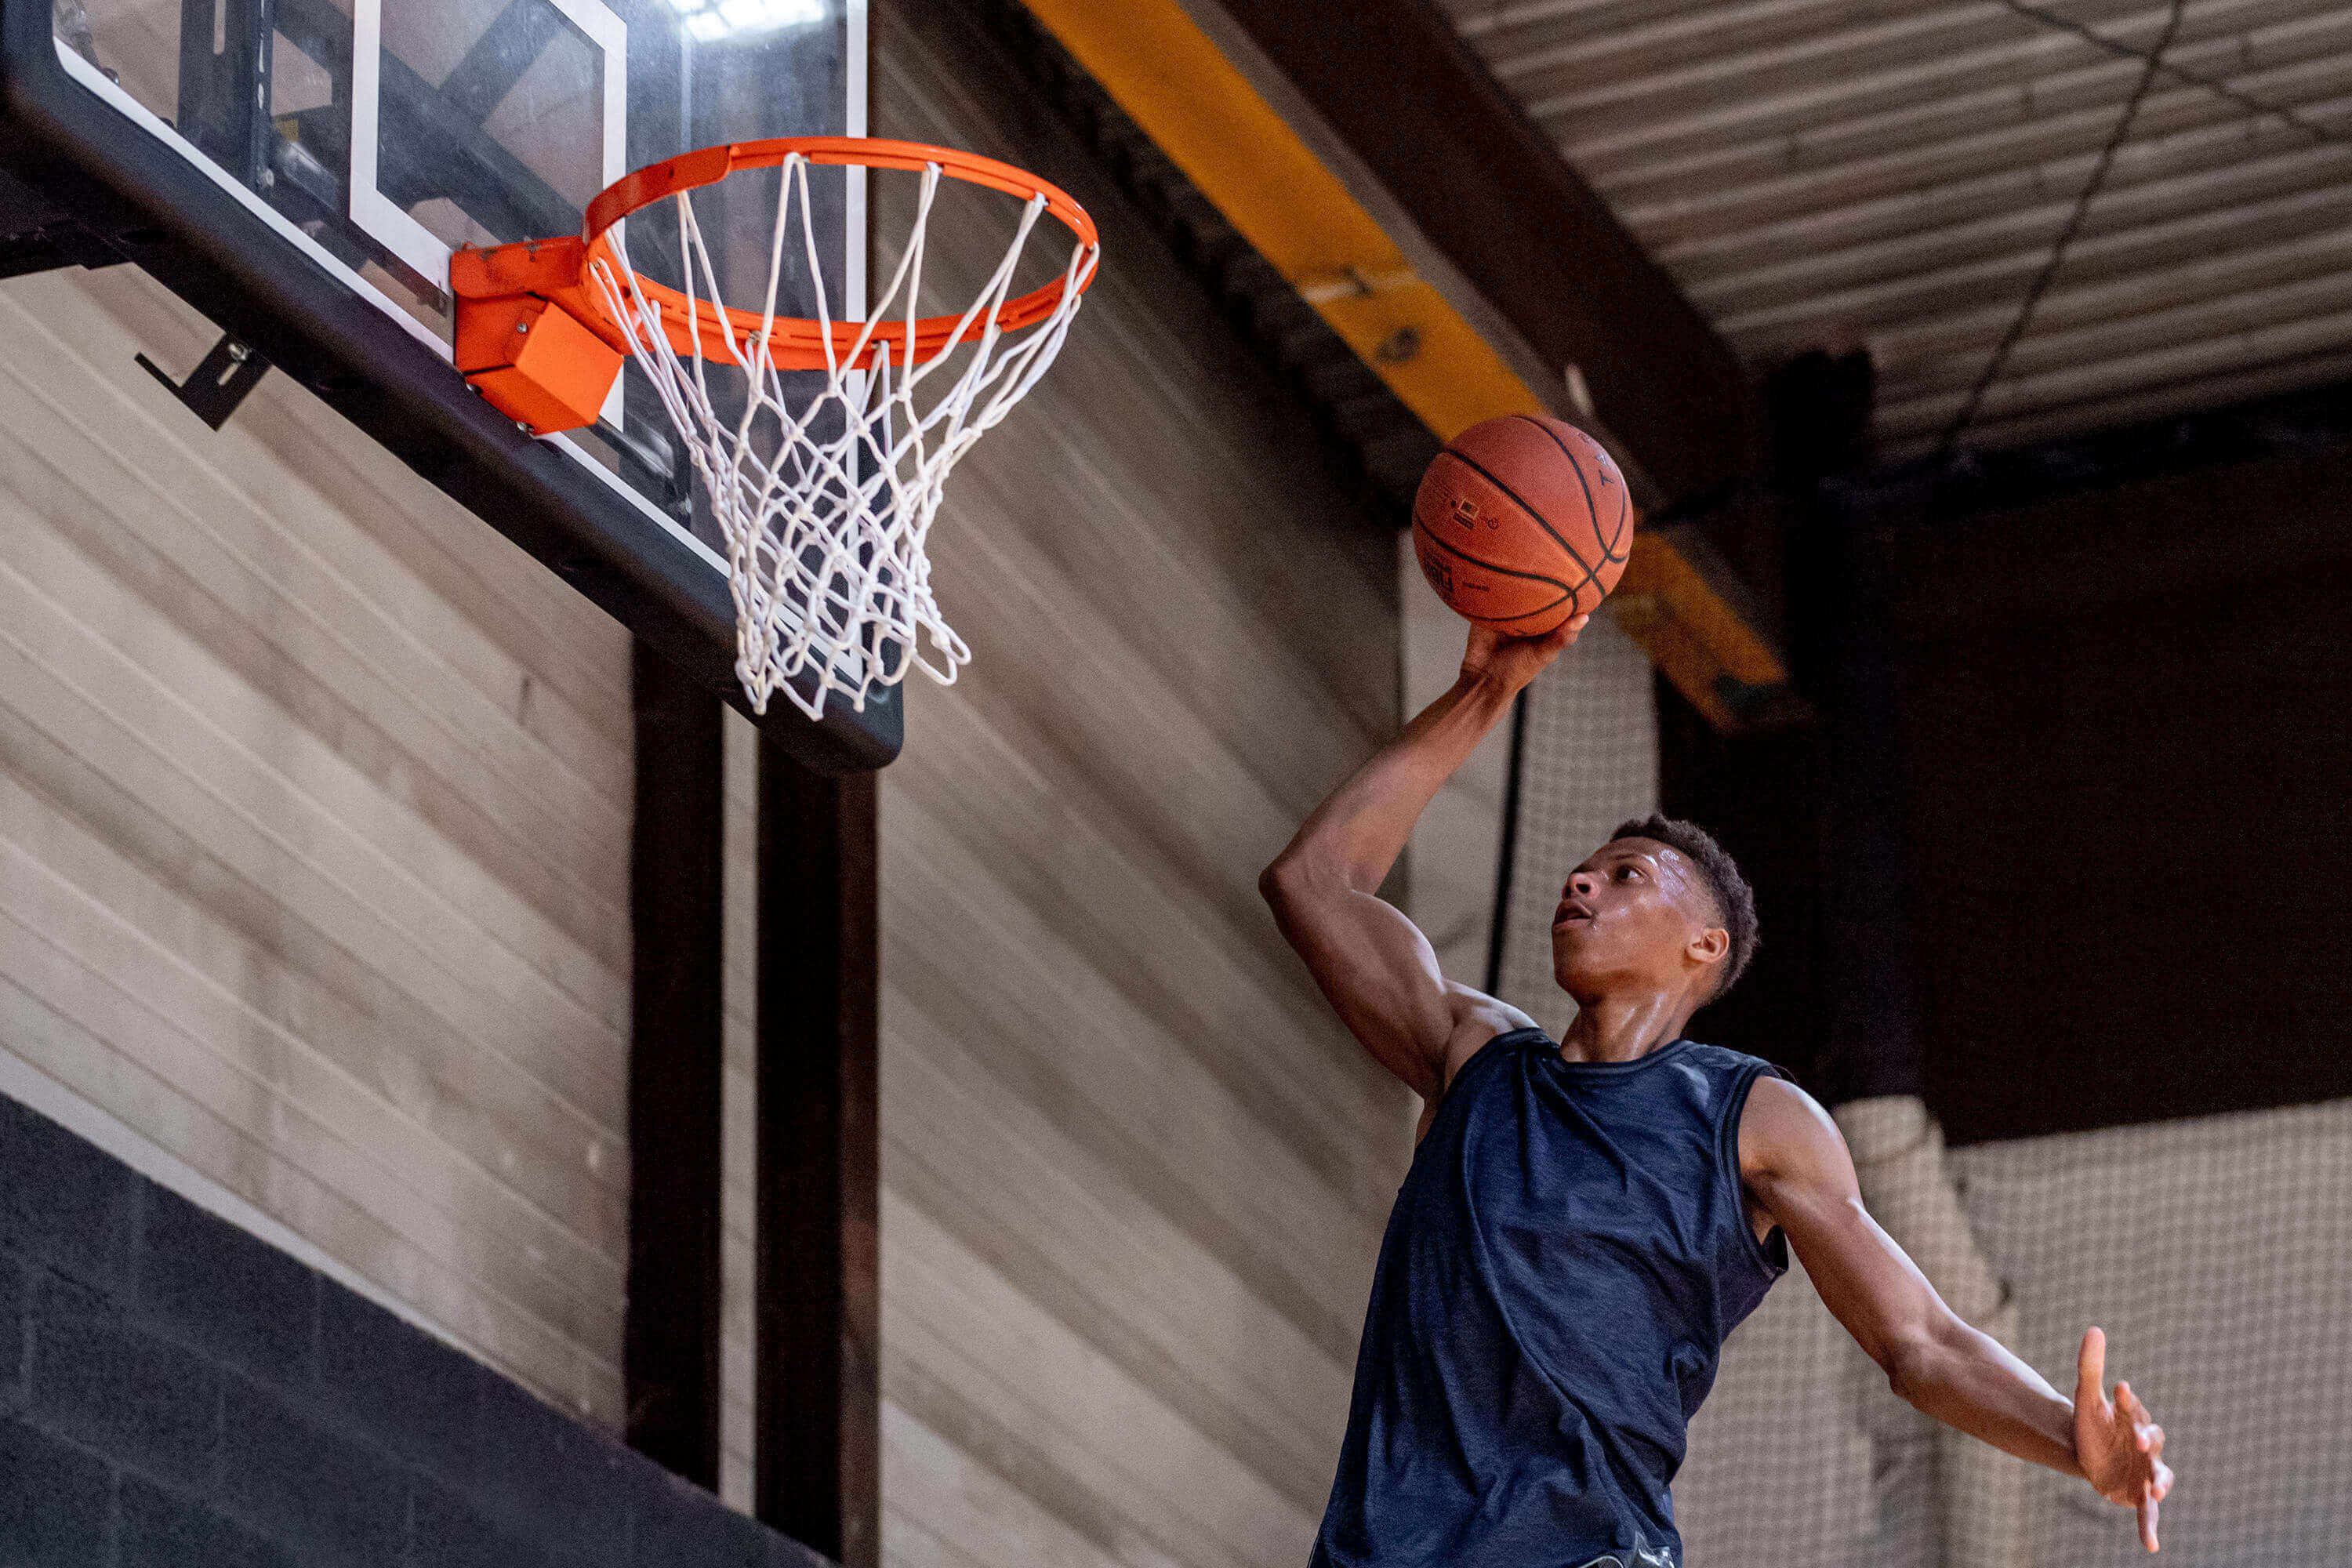 Basketball - 9 Exercises And Stretches To Help Increase Your Vertical Jump